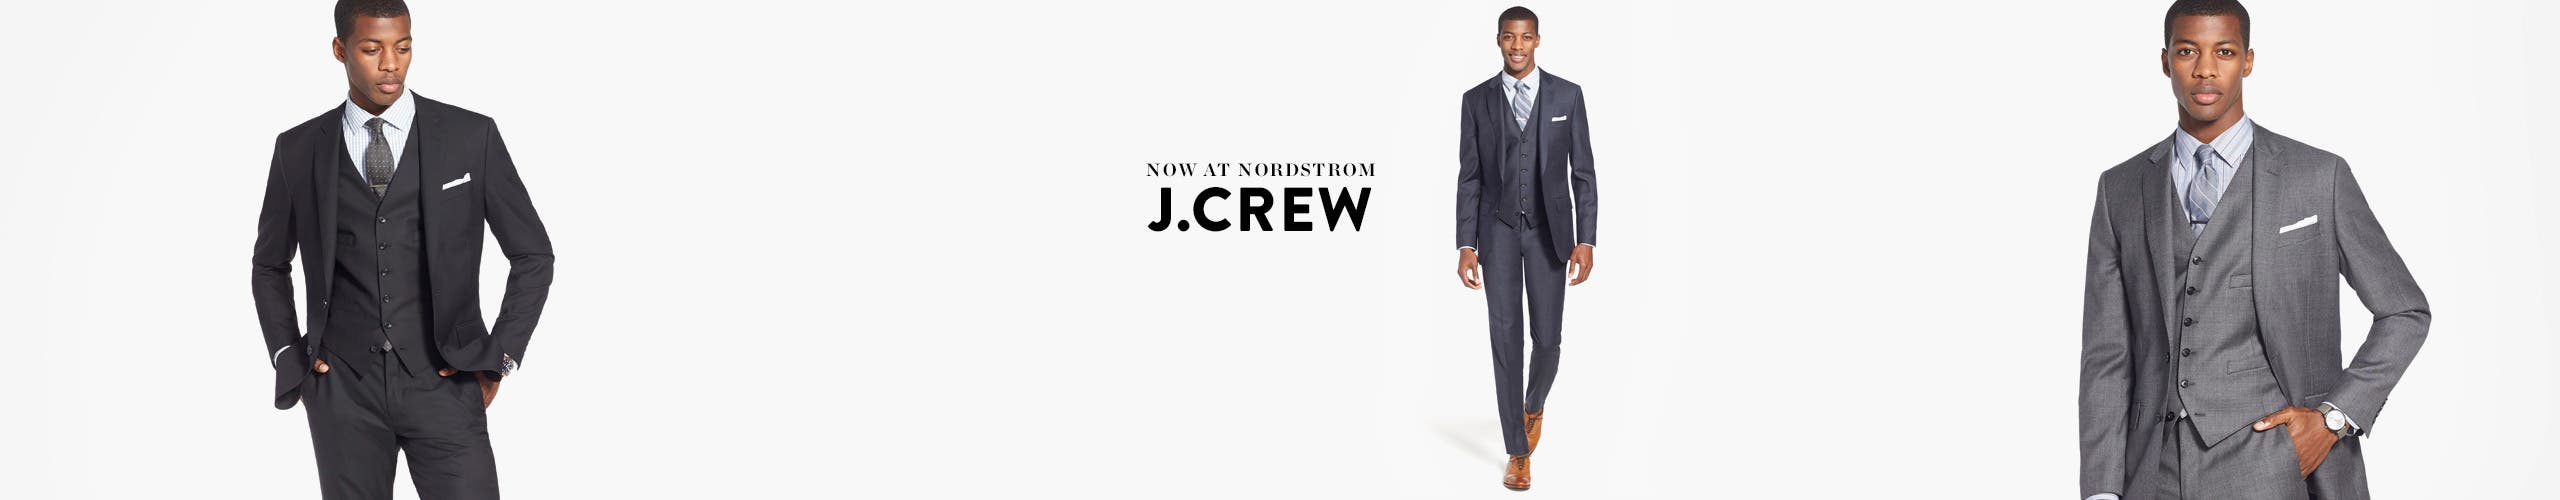 Now at Nordstrom: J. Crew.